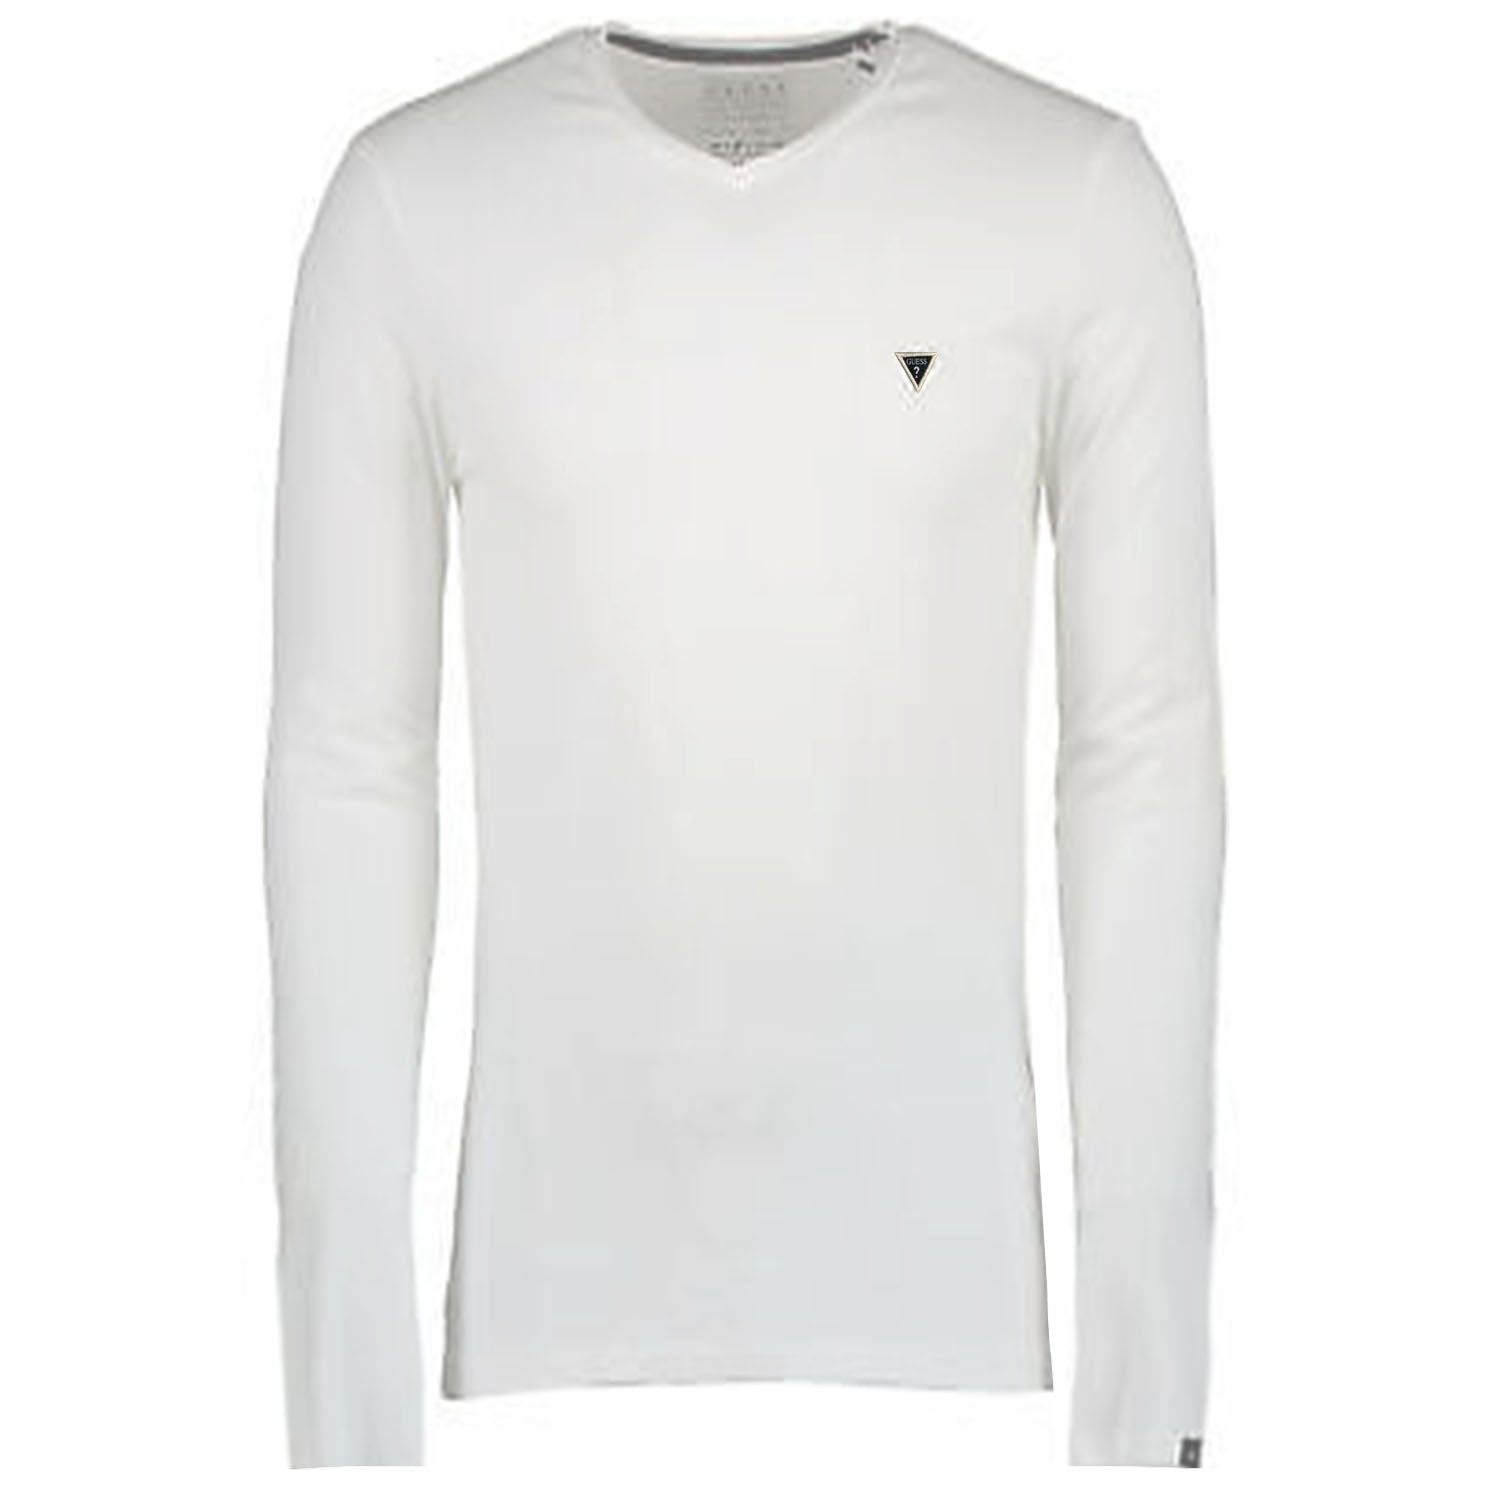 Guess Embroidered Logo V Neck Long Sleeve T-Shirt